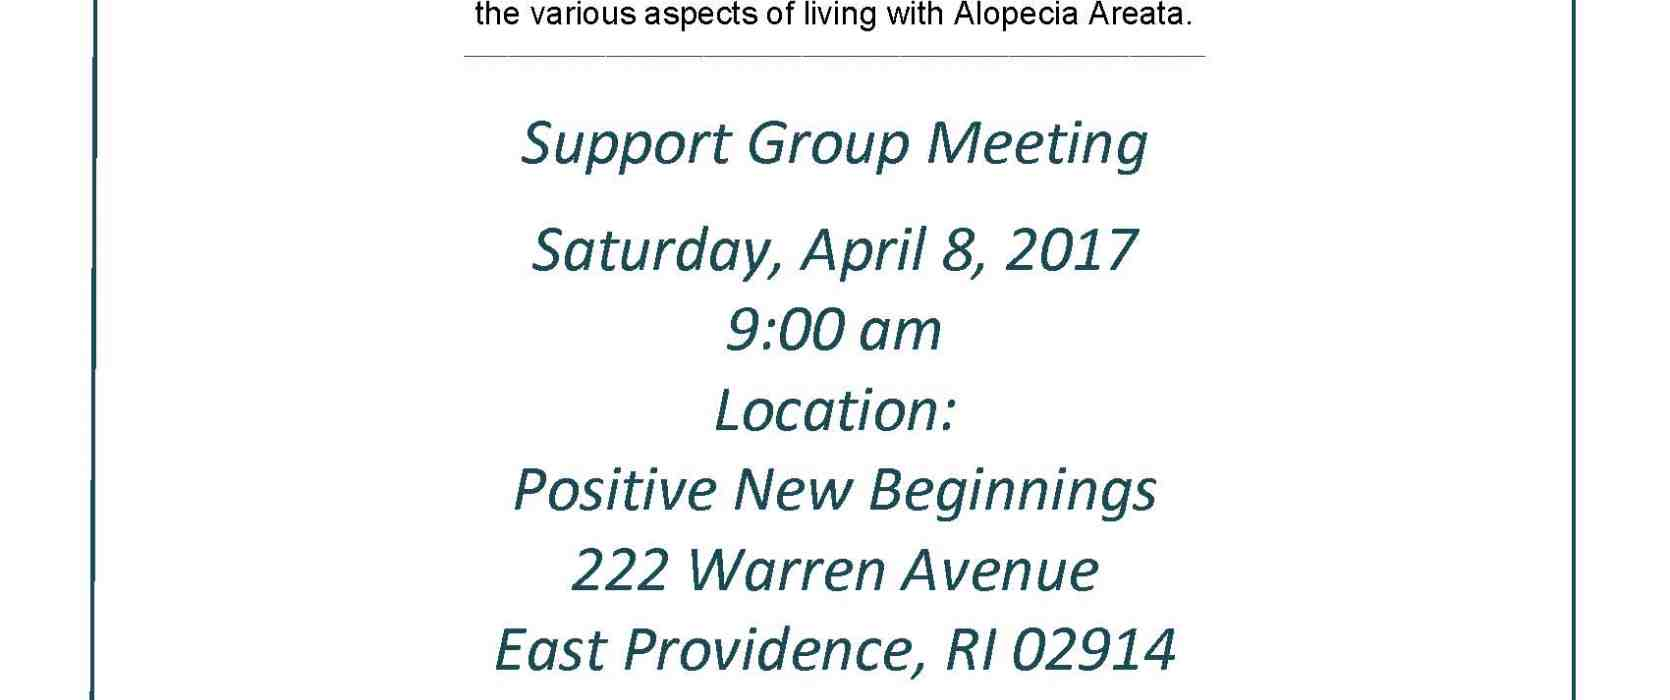 meeting directory support groups